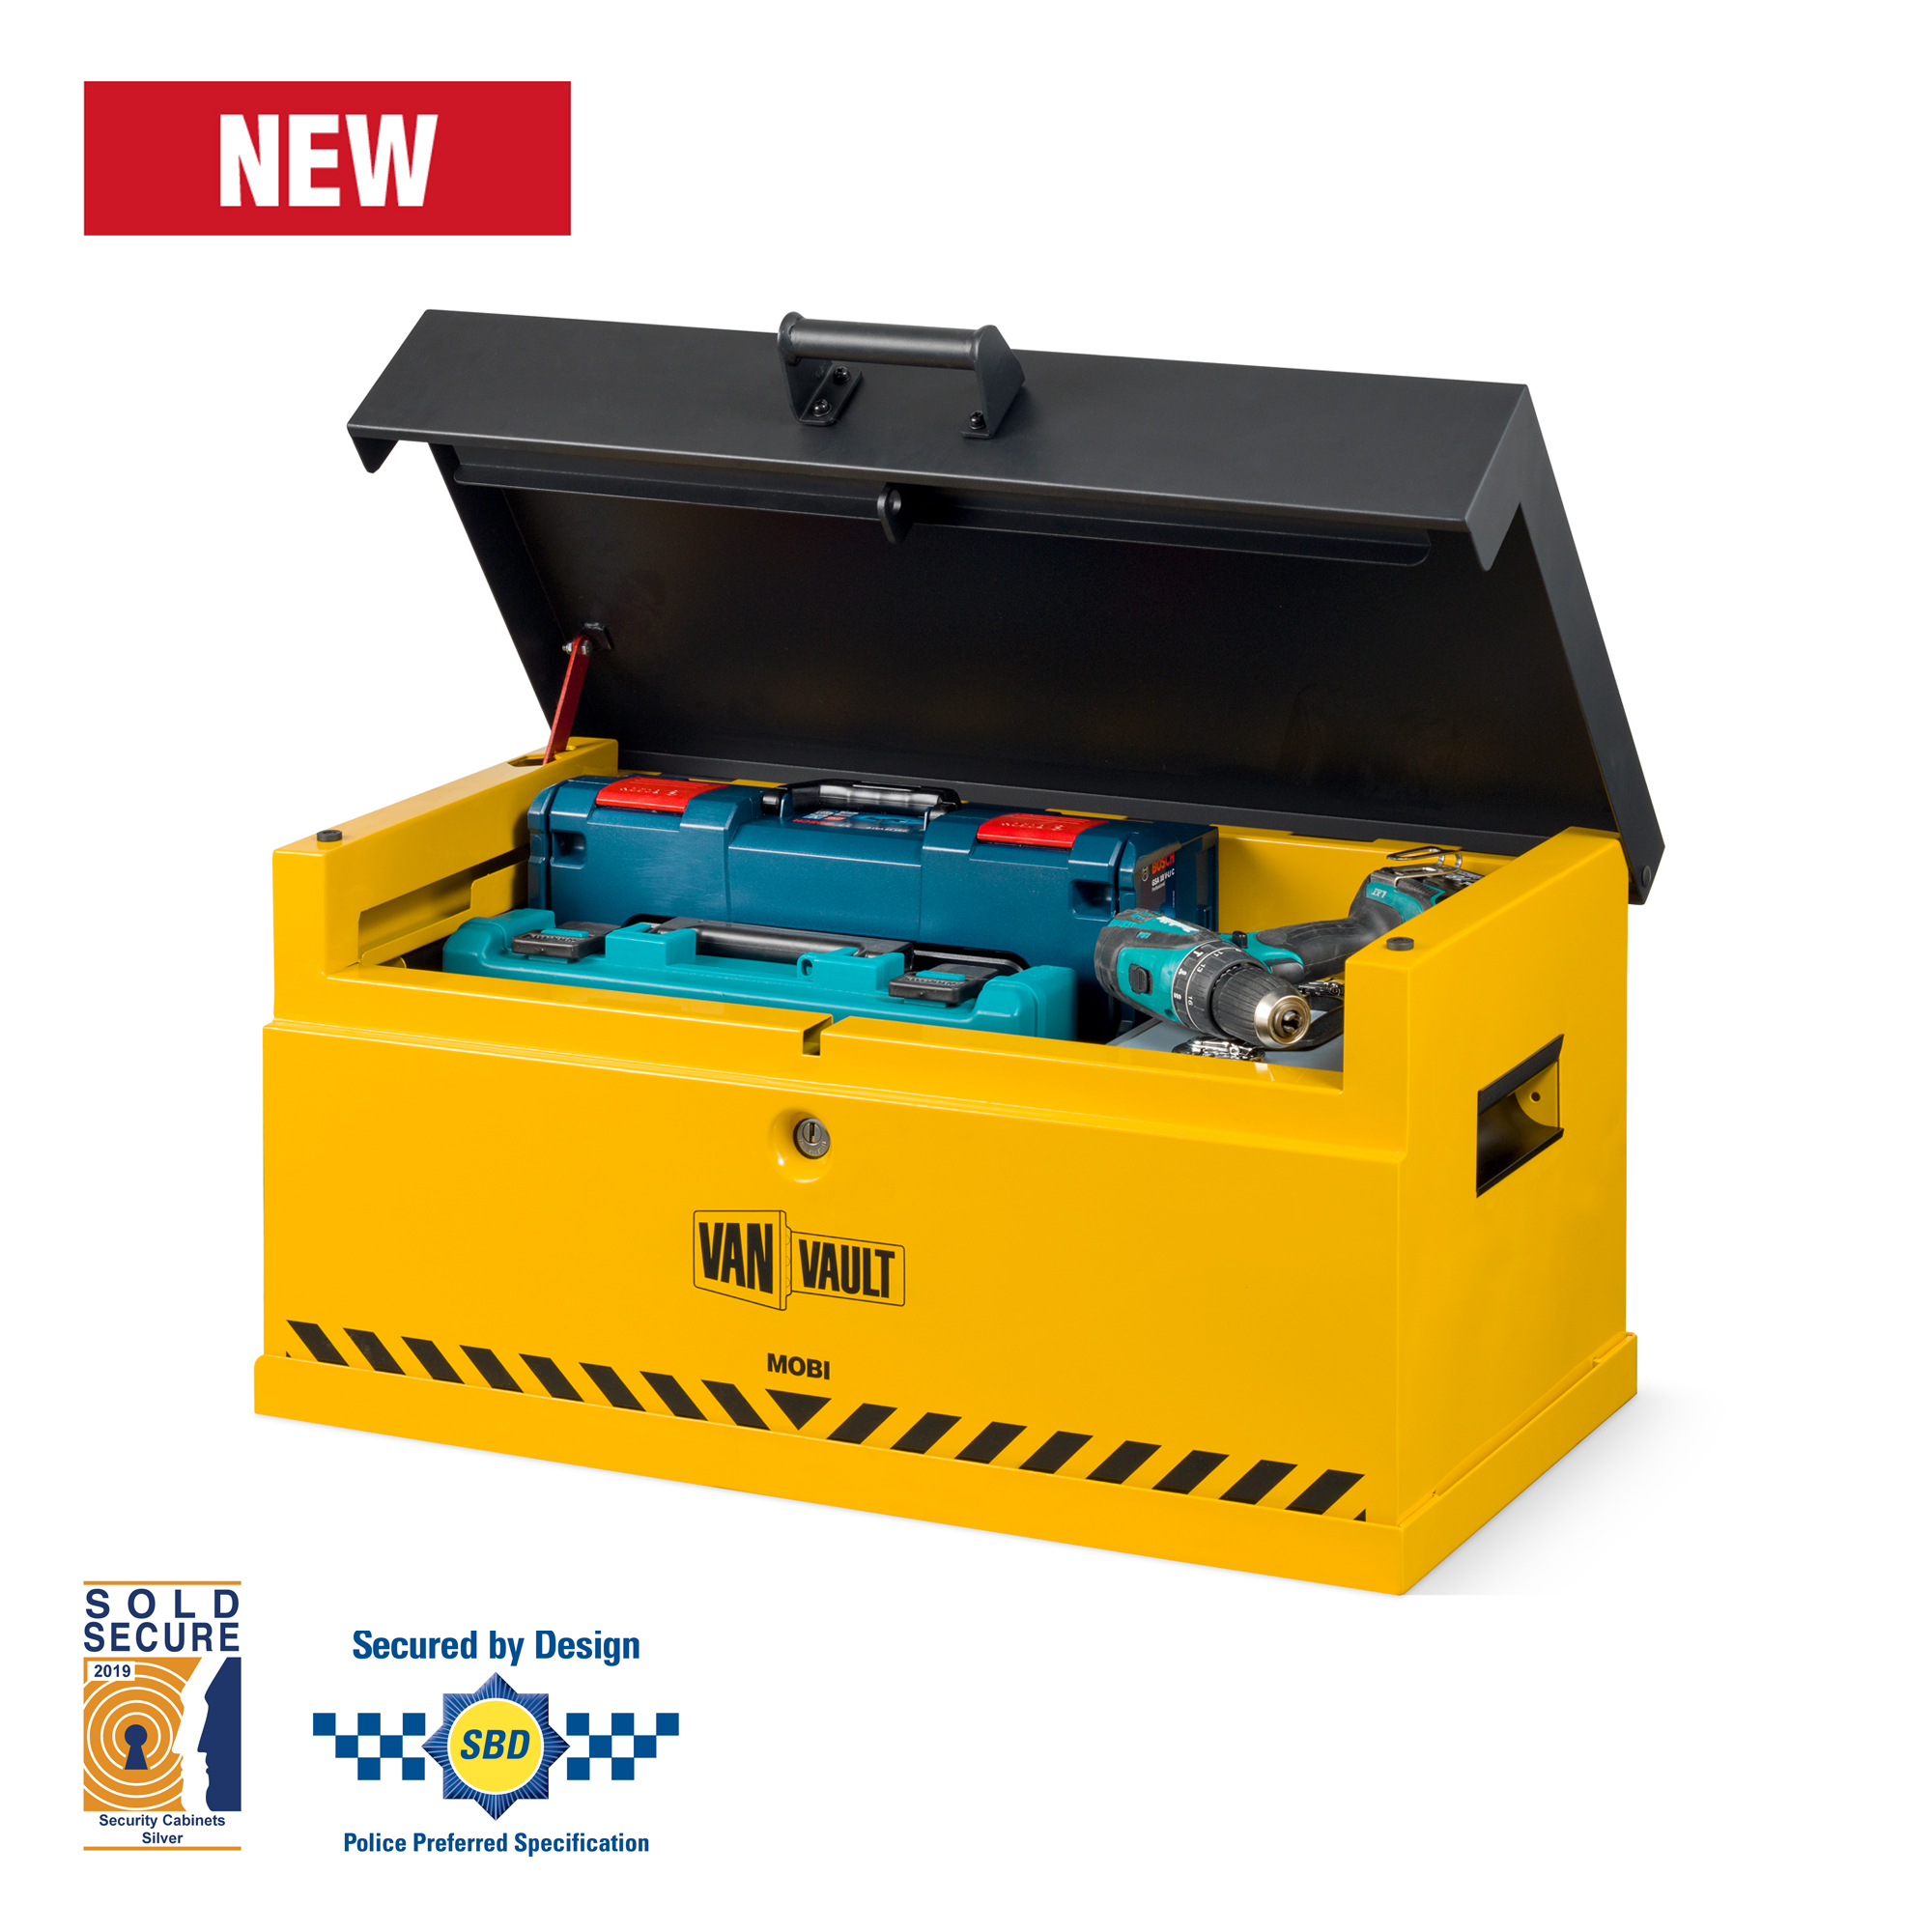 van vault mobi and docking station with lid open full of tools